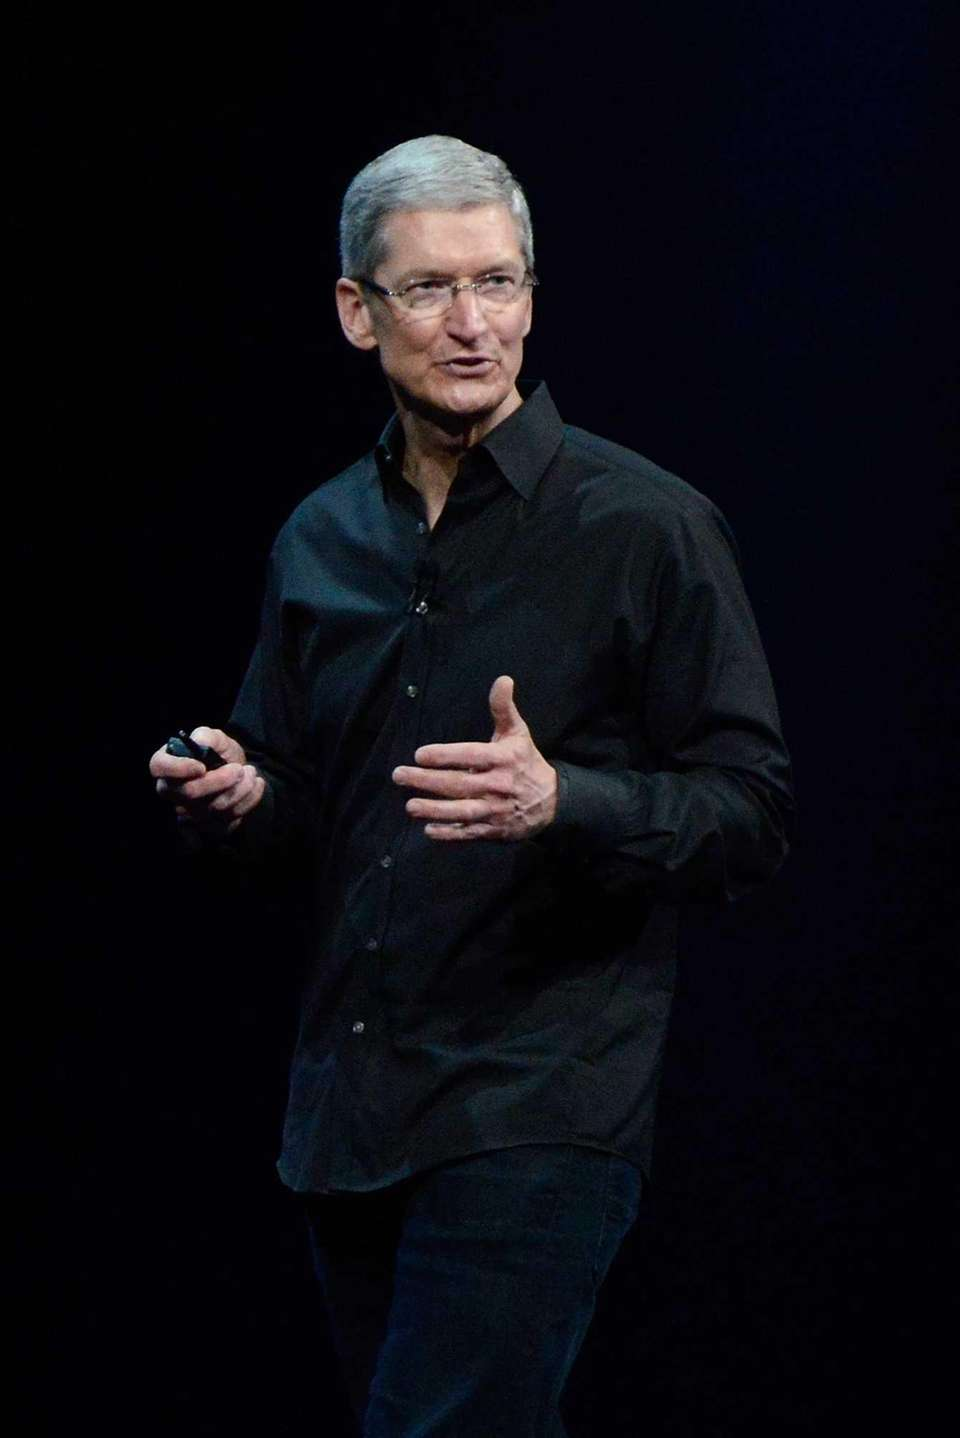 Apple chief executive Tim Cook is expected to